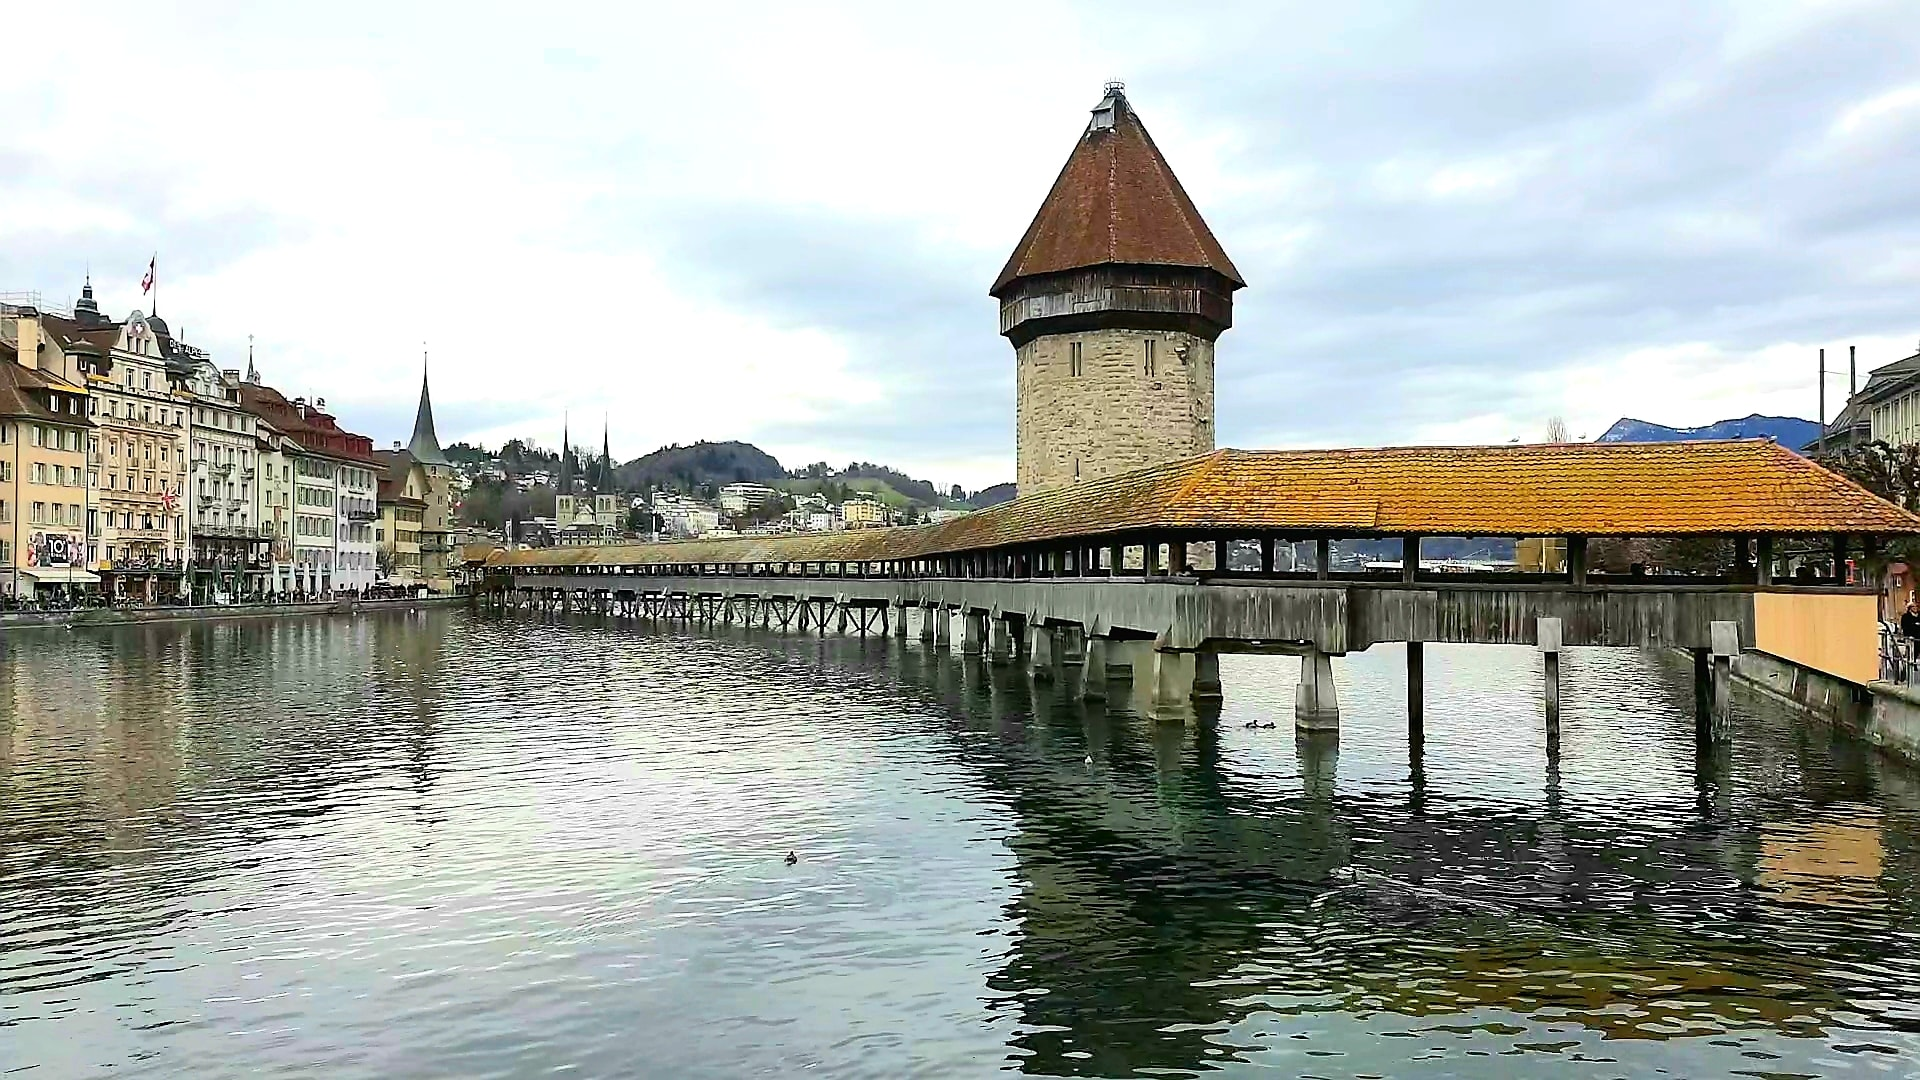 The Old Bridge of Lucerne